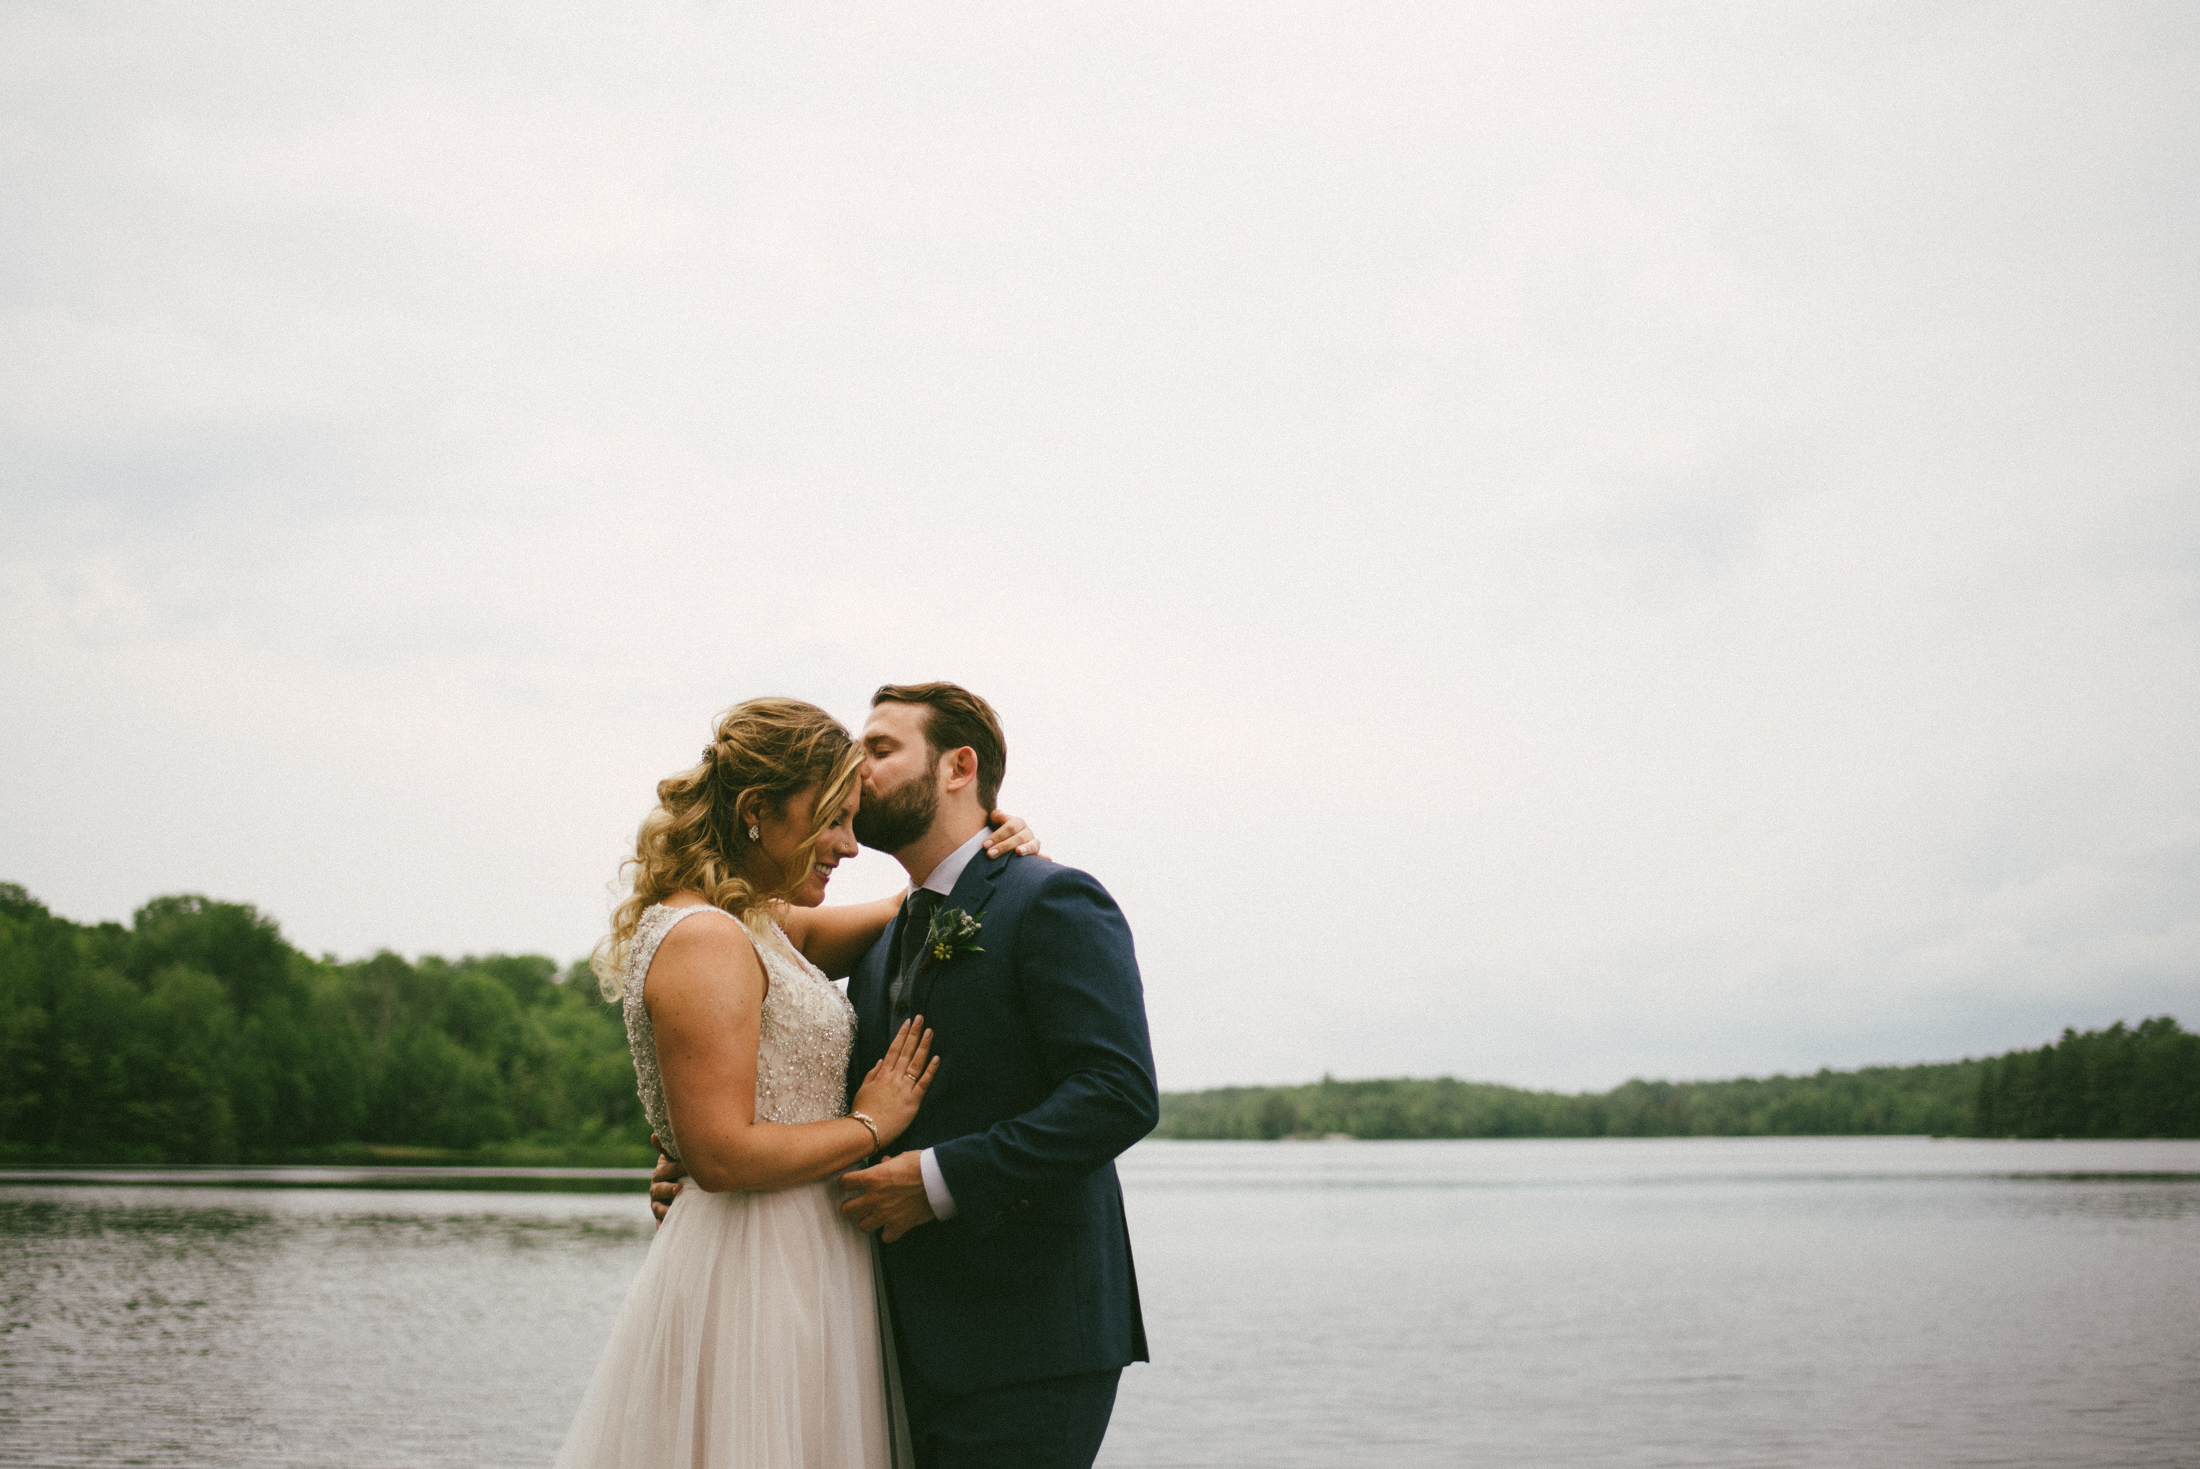 Bark Lake Haliburton Wedding - by Megan Ewing